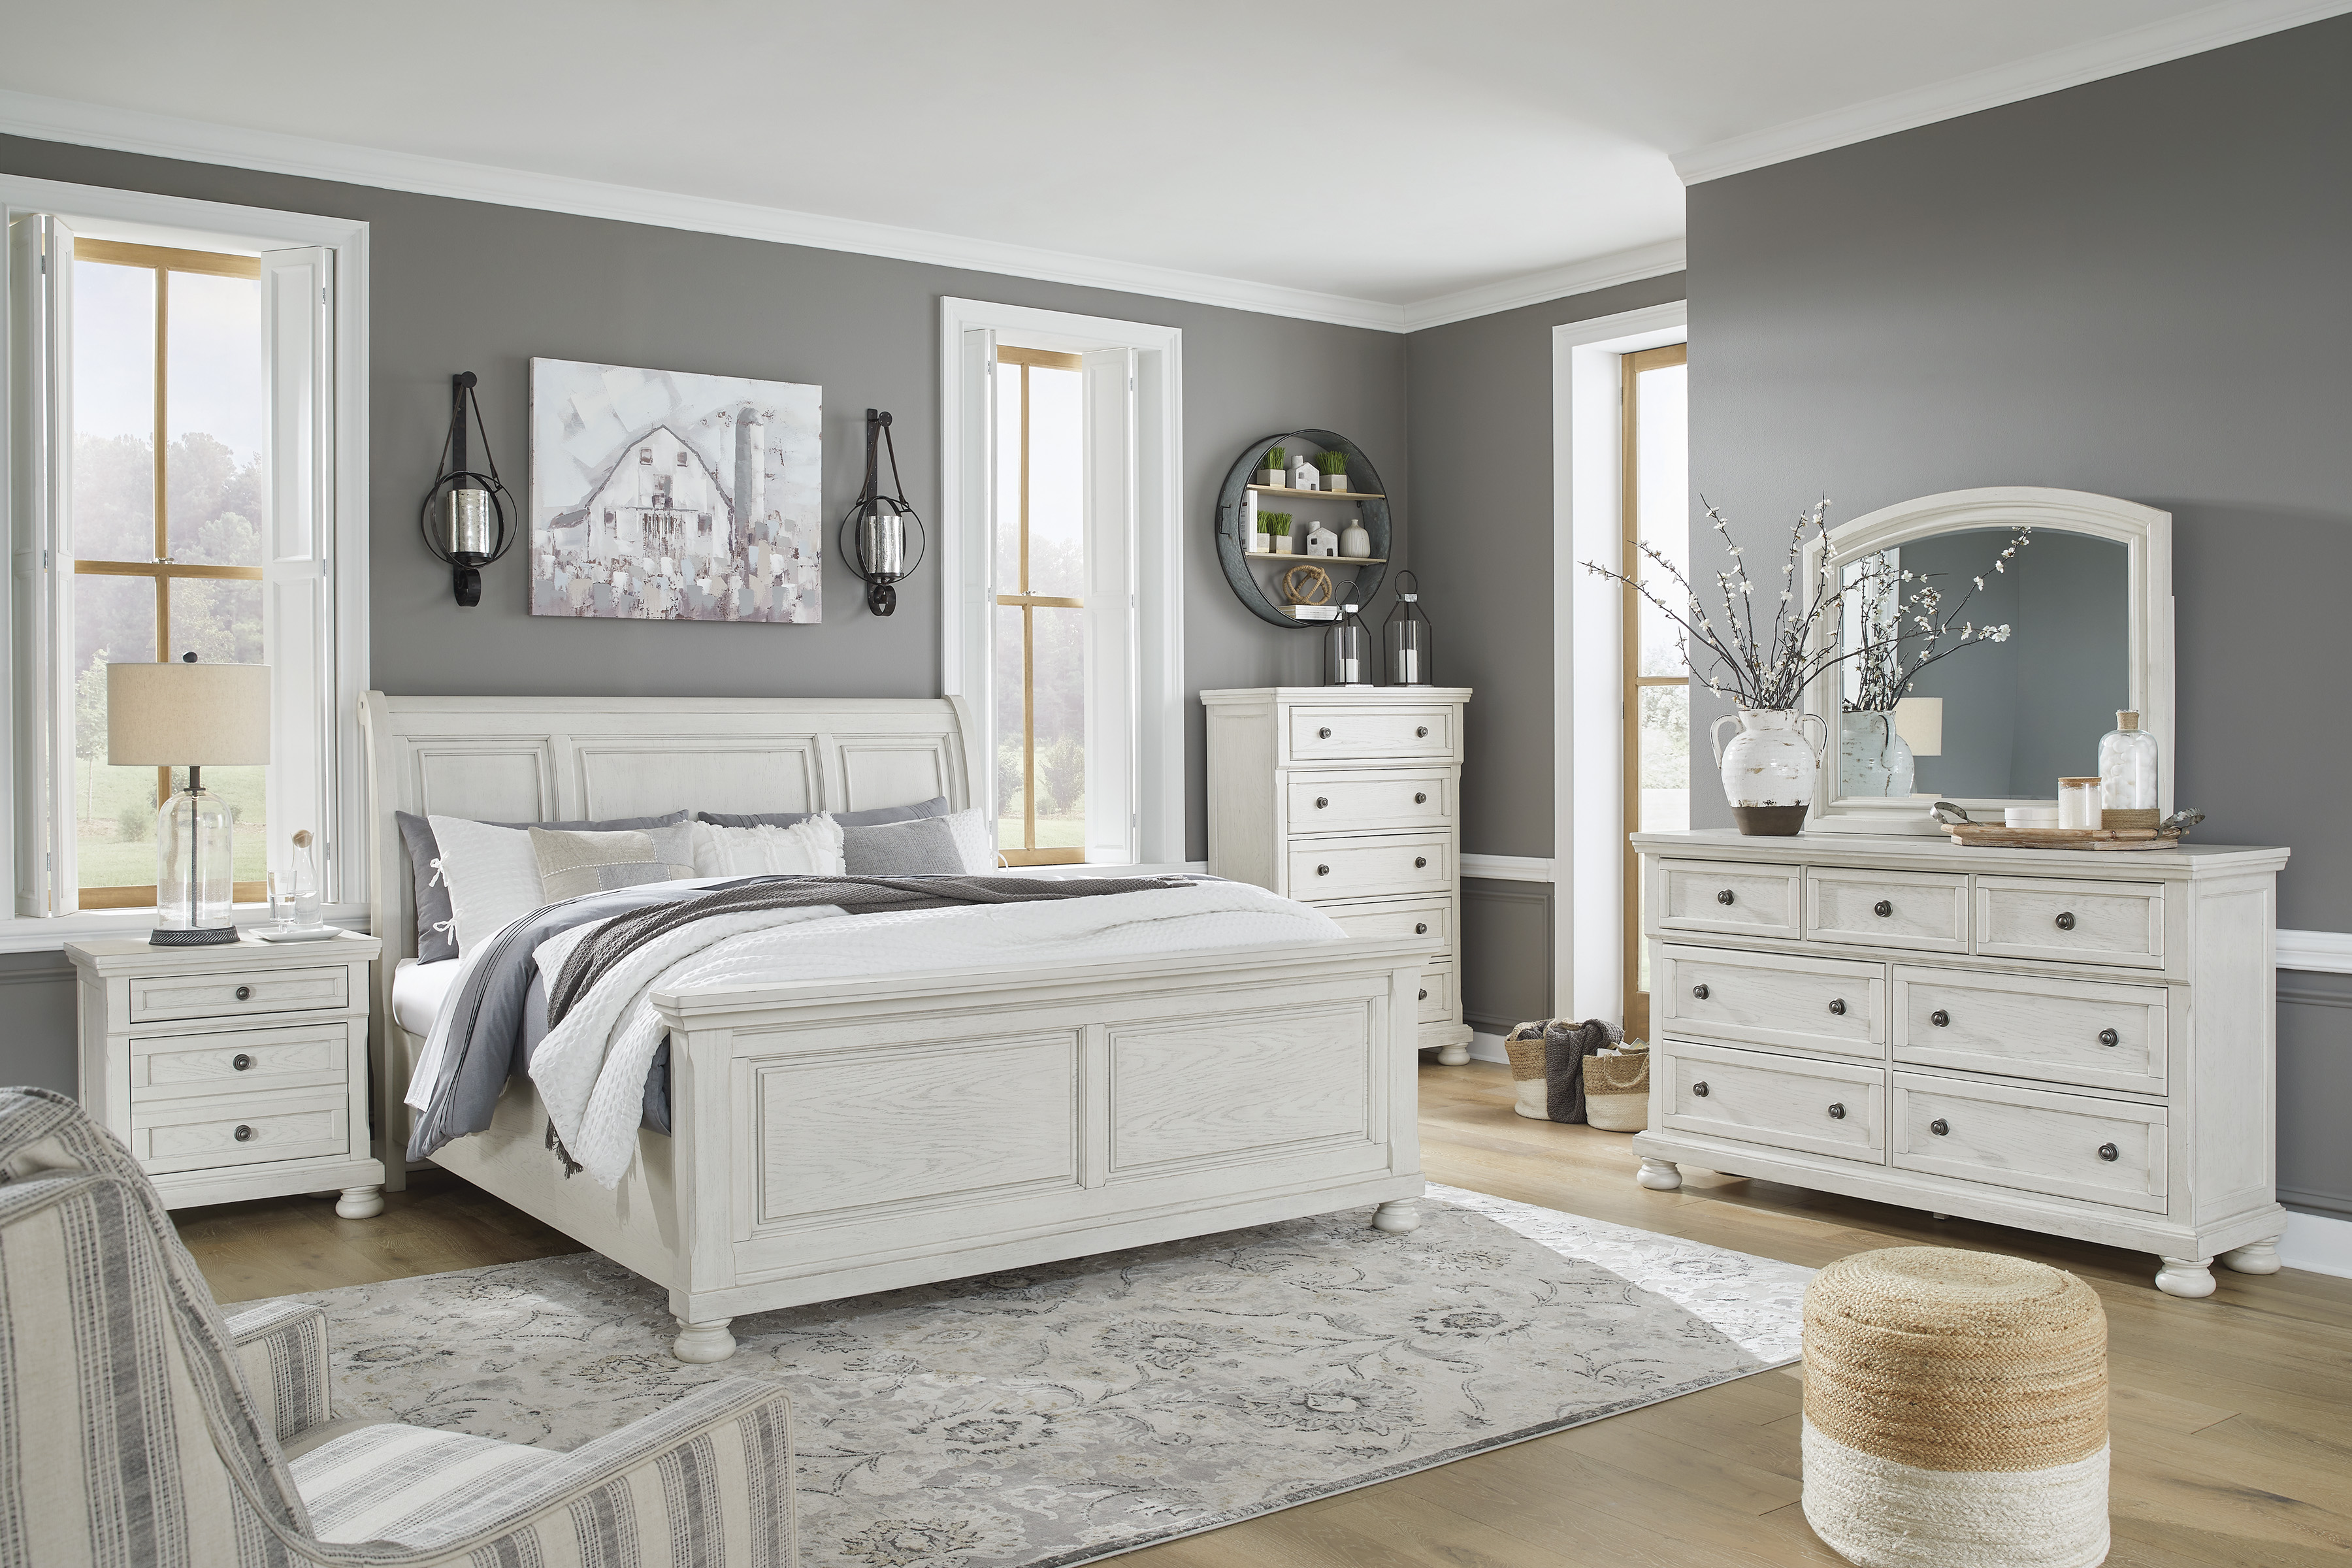 Robbinsdale Bedroom Groups by Signature Design by Ashley at Lynn's Furniture & Mattress